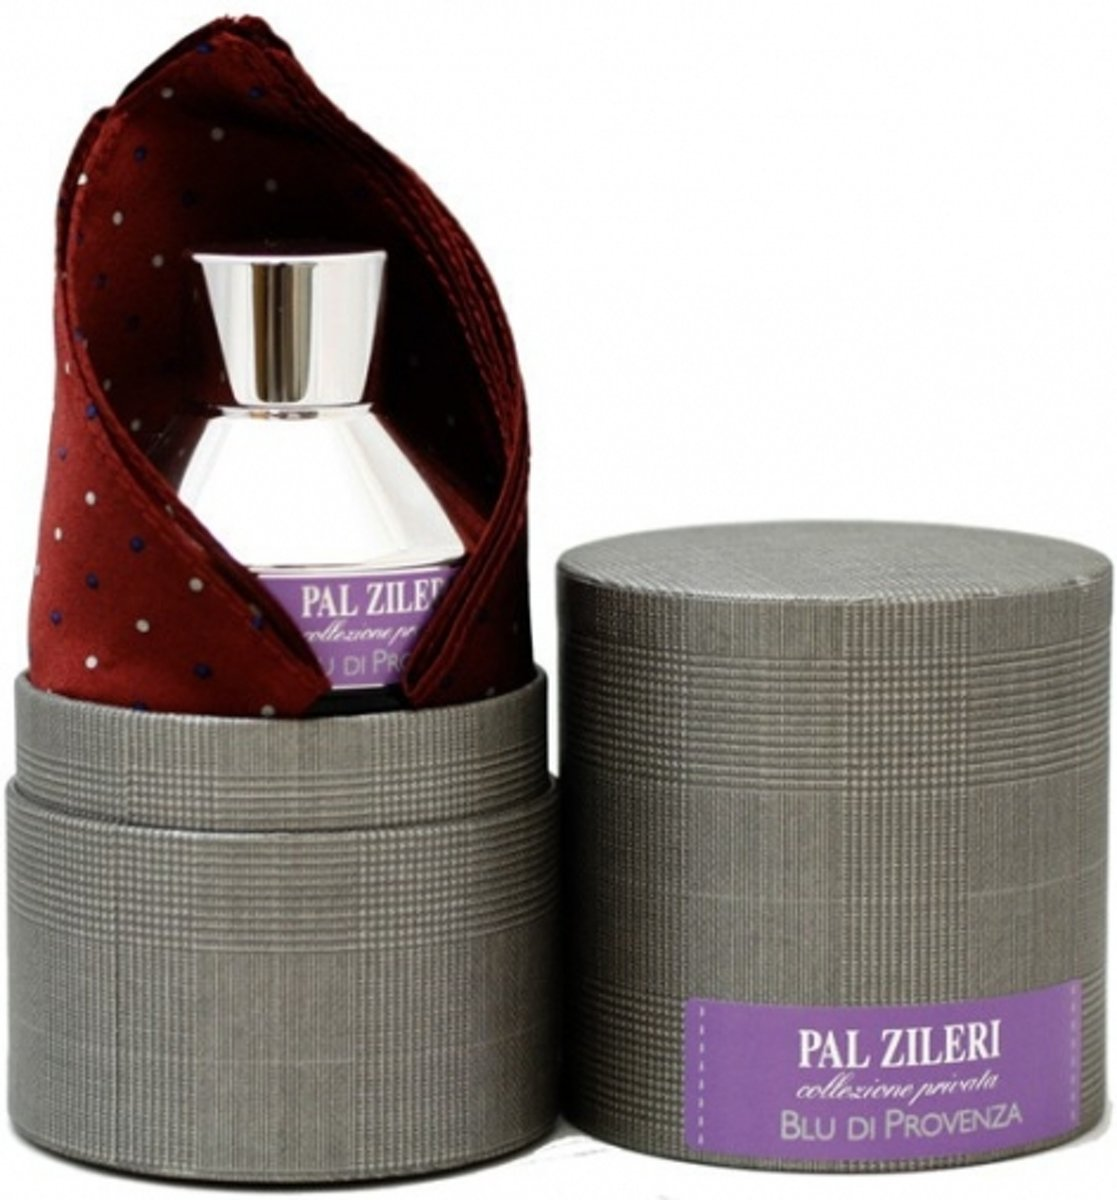 Pal Zileri Blu di Provenza Eau de Toilette Spray 50 ml